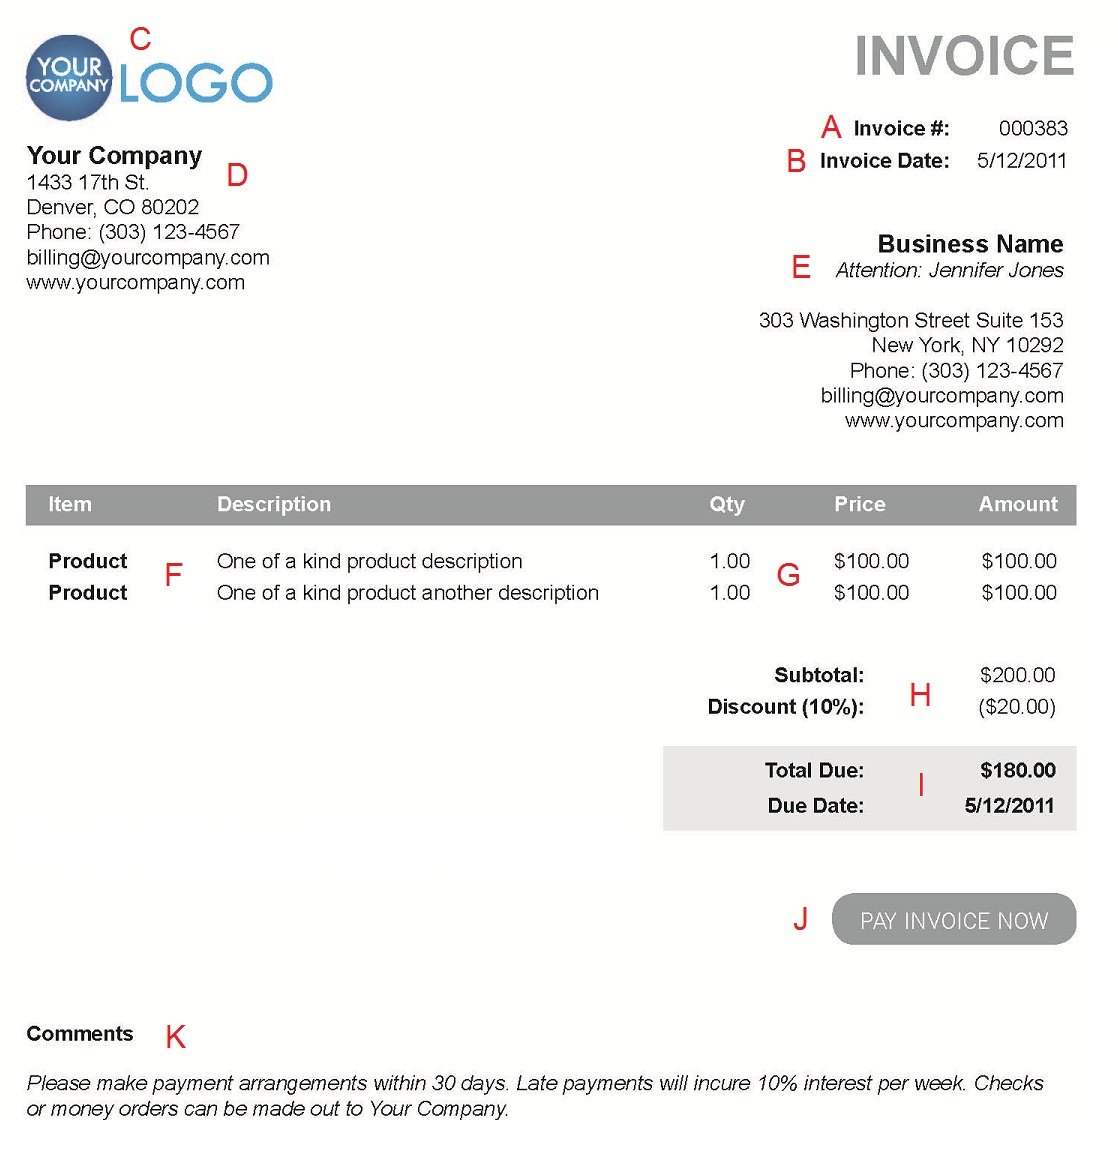 Occupyhistoryus  Sweet The  Different Sections Of An Electronic Payment Invoice With Handsome A  With Amusing Verizon Invoice Also Fake Invoice Maker In Addition Make Free Invoice And Export Invoice As Well As Free Invoicing Online Additionally What Is Invoice Price On A New Car From Paysimplecom With Occupyhistoryus  Handsome The  Different Sections Of An Electronic Payment Invoice With Amusing A  And Sweet Verizon Invoice Also Fake Invoice Maker In Addition Make Free Invoice From Paysimplecom